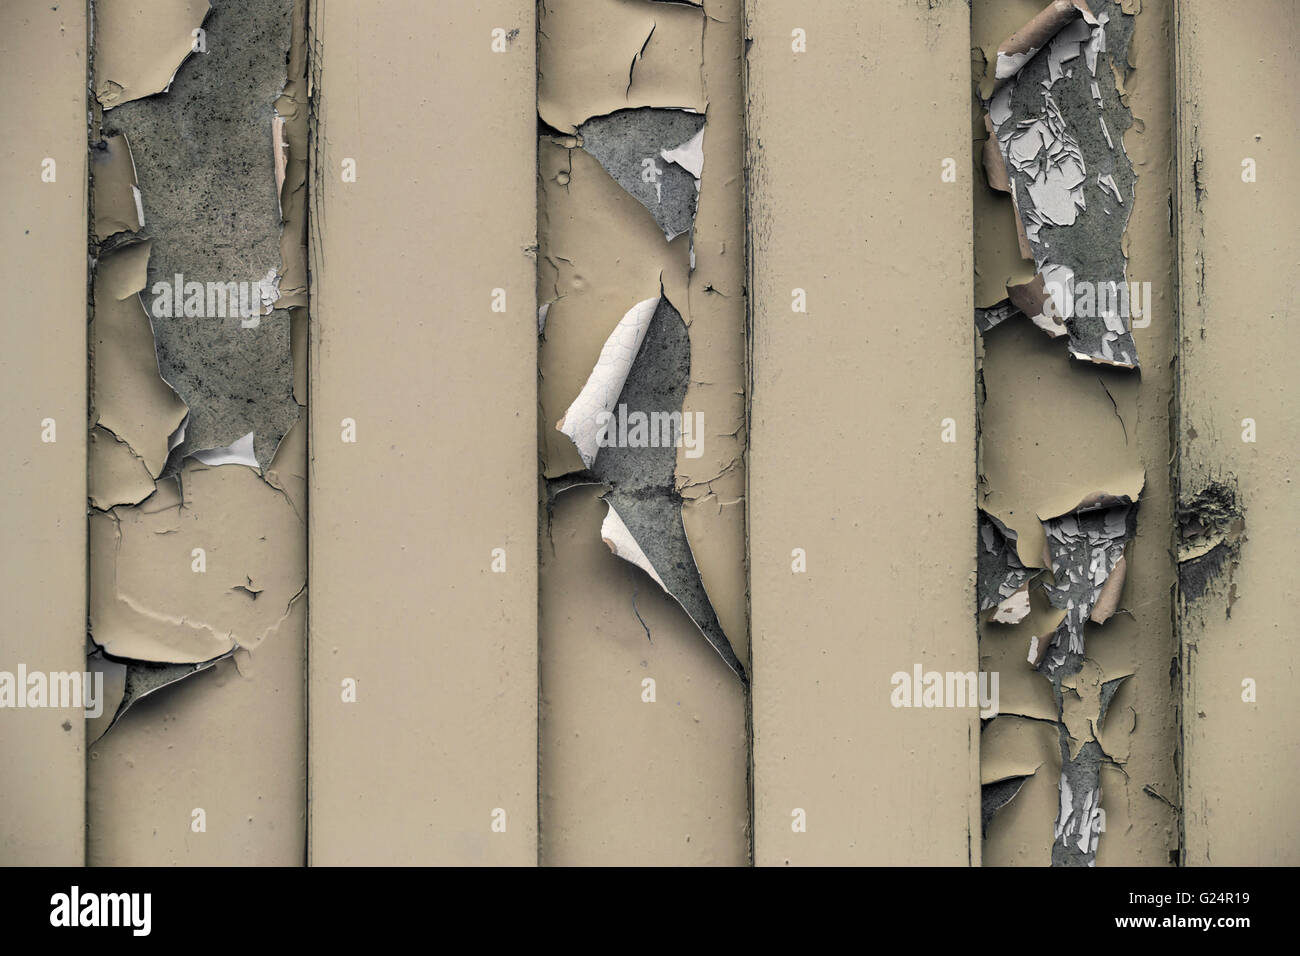 Dry, cracked and peeling paint. - Stock Image